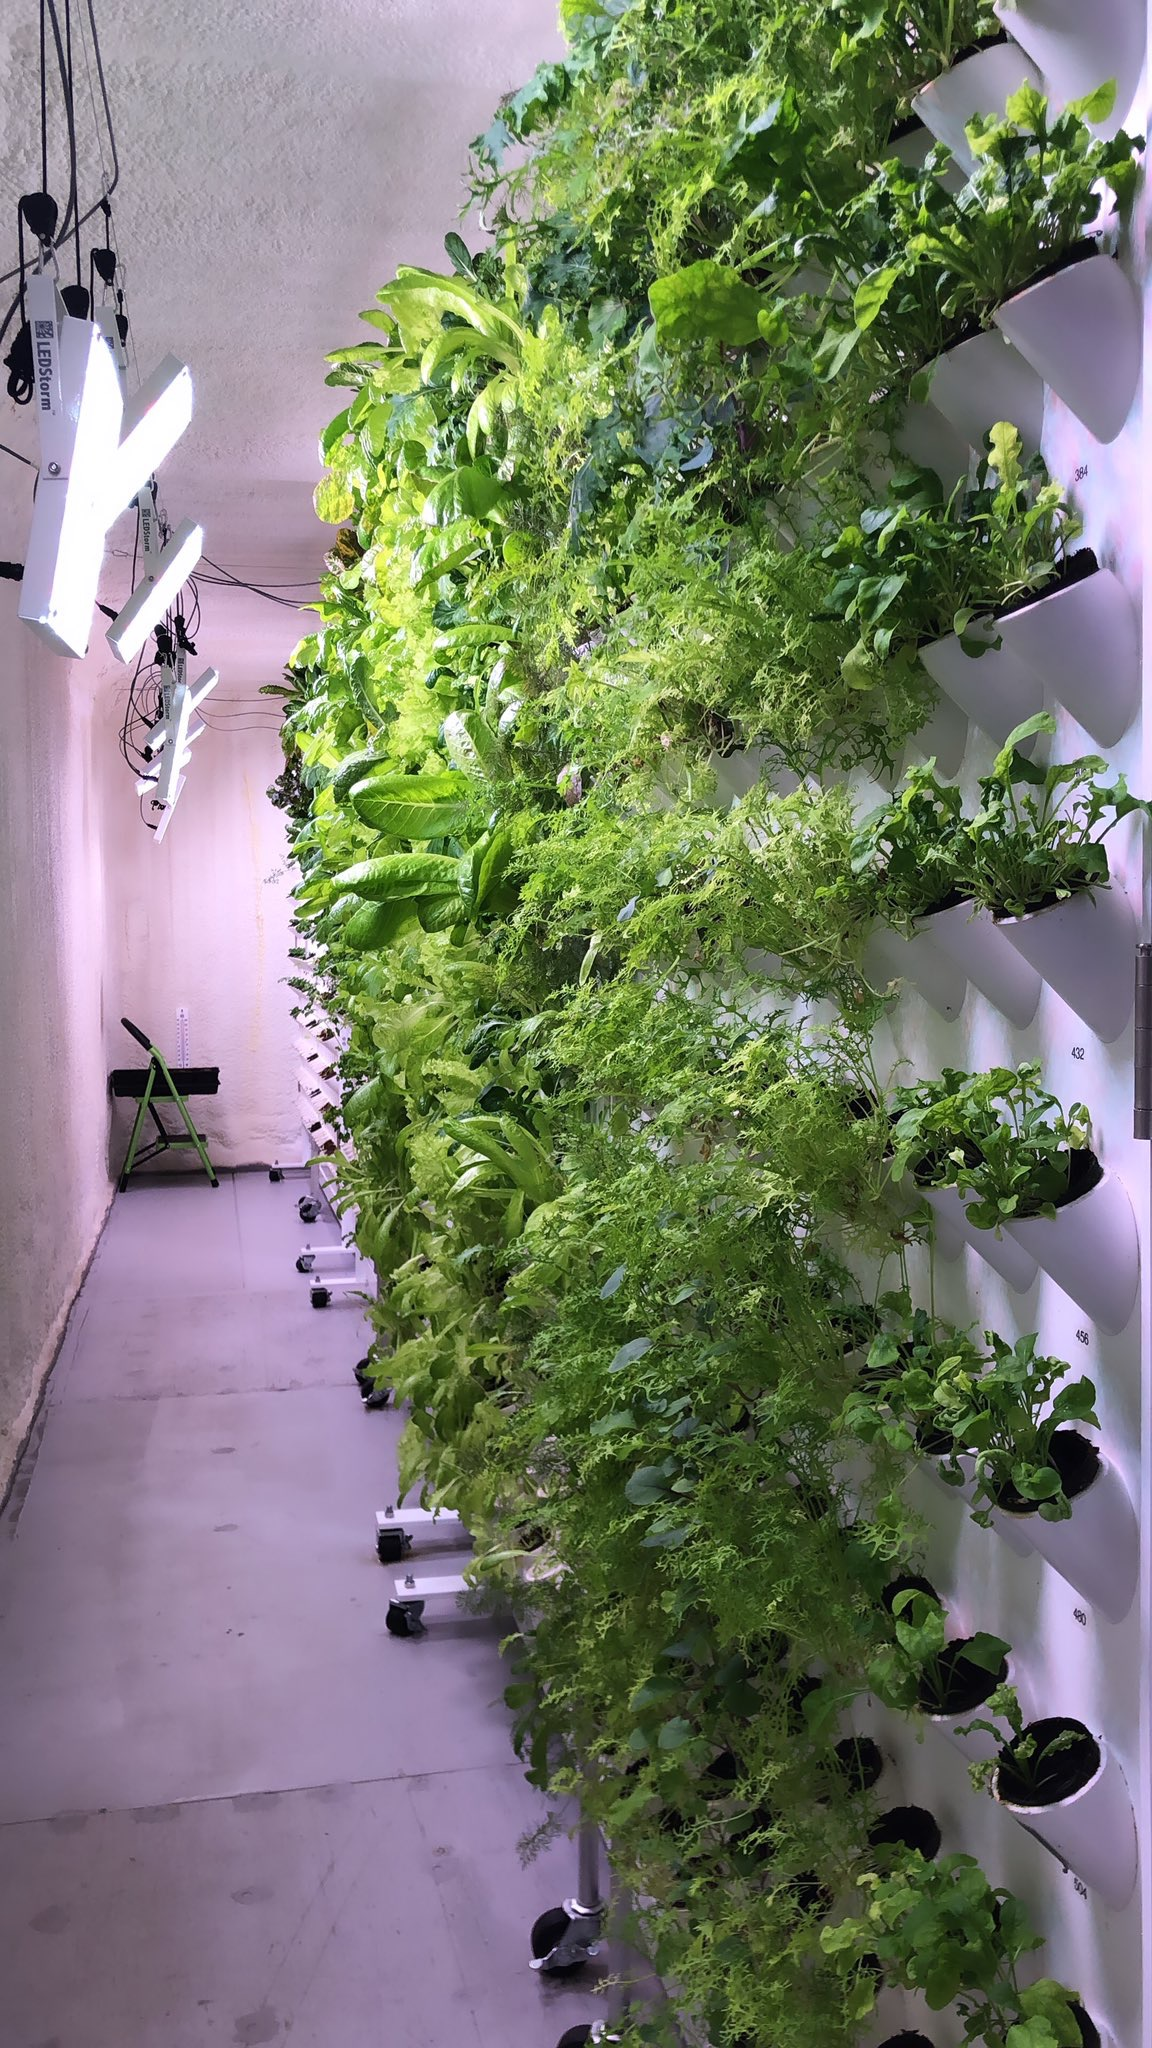 Earth Ponics Grow Walls inside our climate controlled environment.